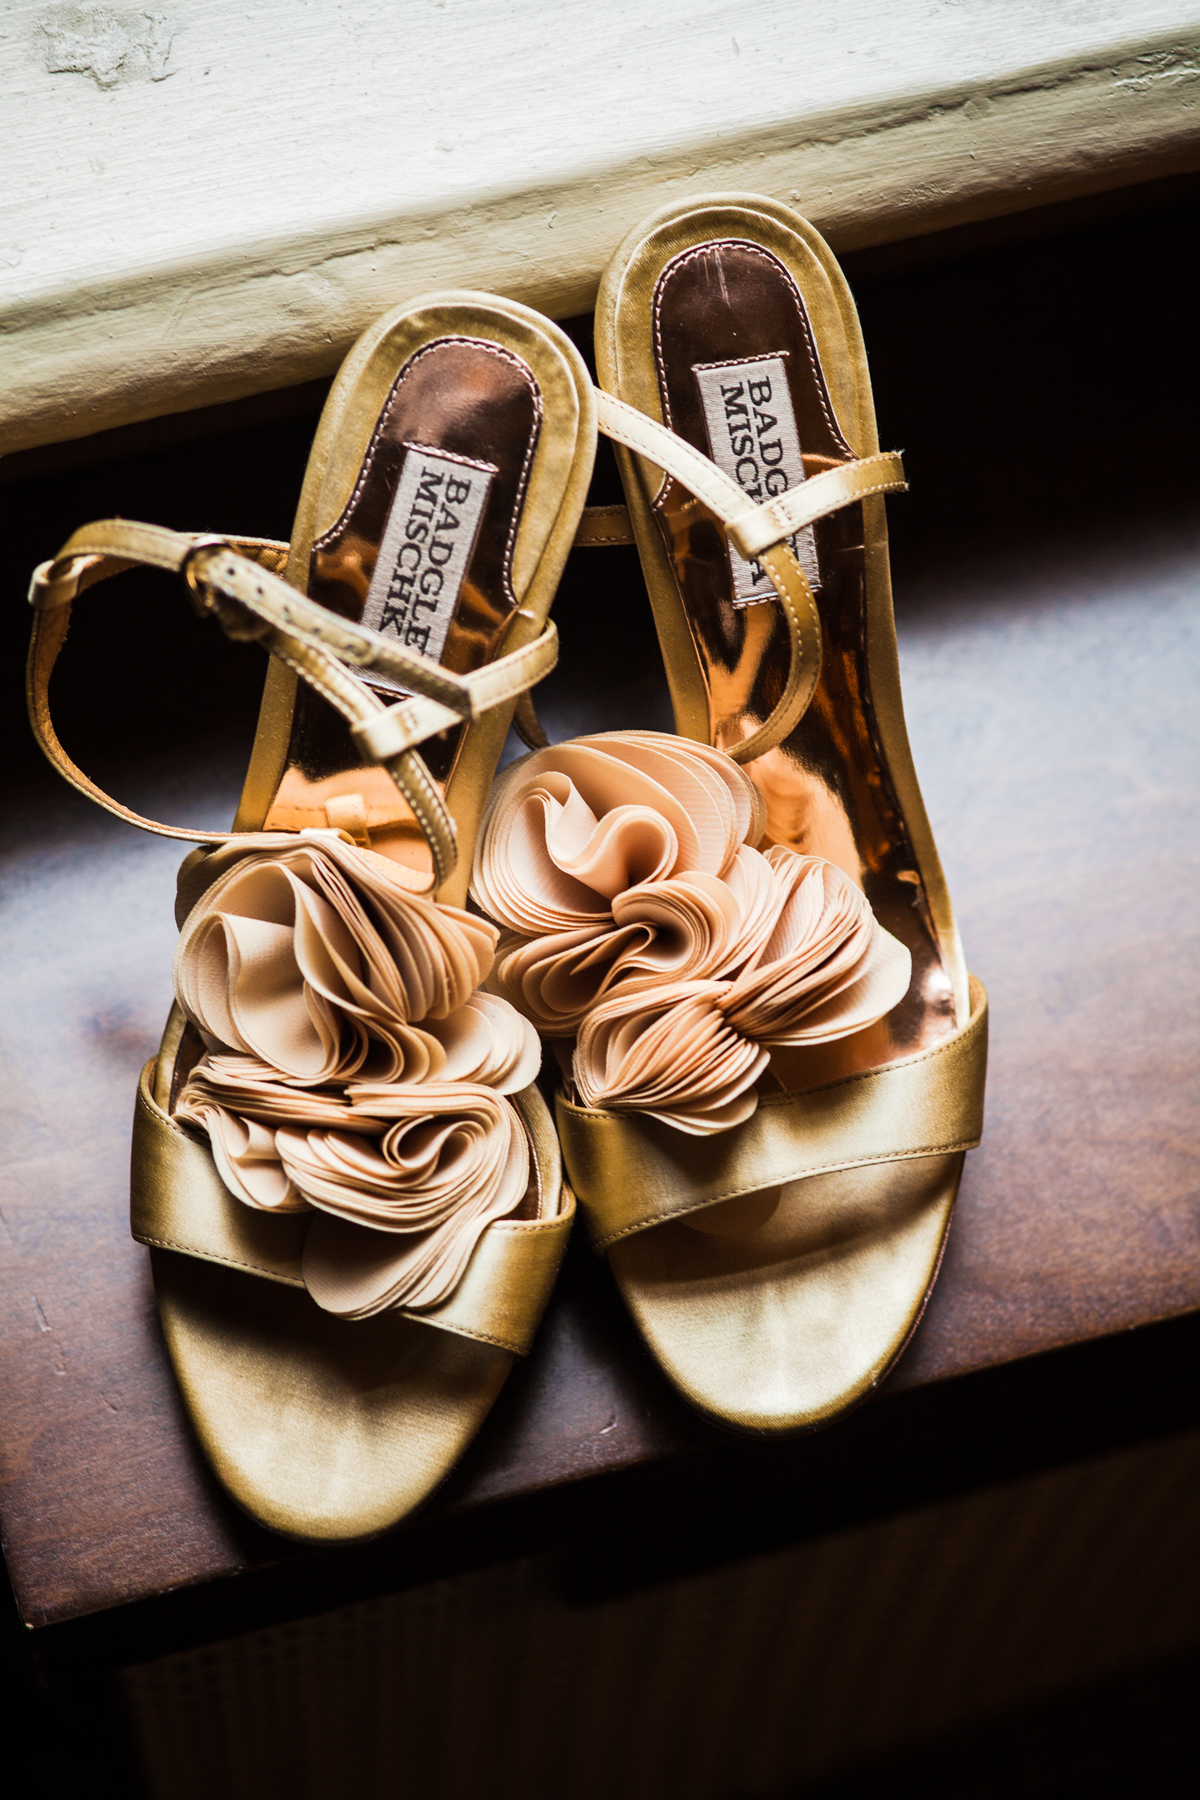 chicago-documentary-wedding-at-a-new-leaf-vintage-inspired-jumping-the-broom-oriana-koren-0707.jpg